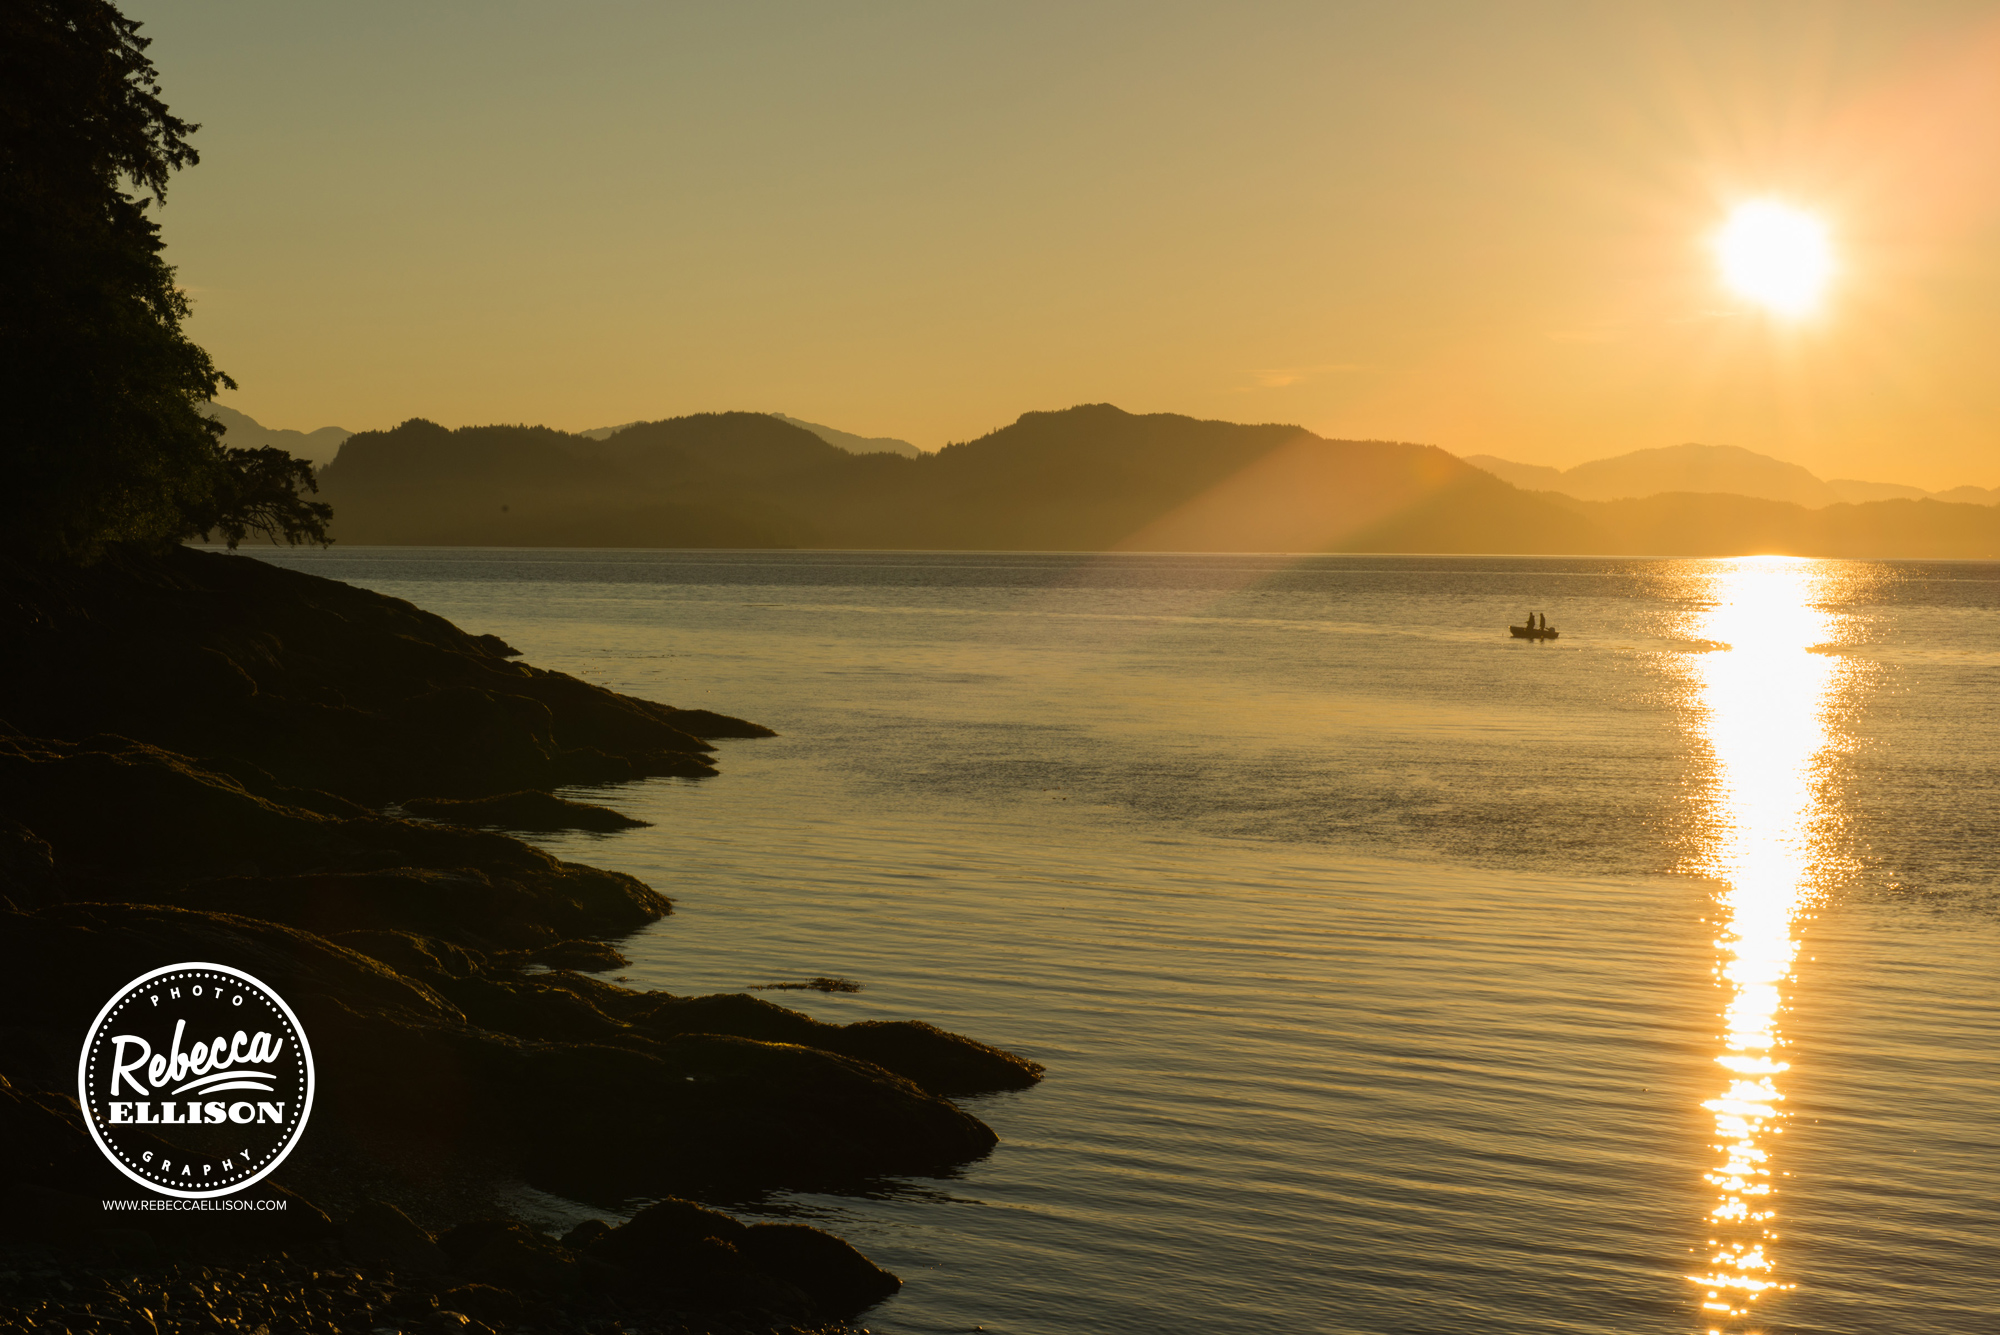 Ketchikan Sunrise over the cean and rocky beach photographed by Rebecca Ellison Photography